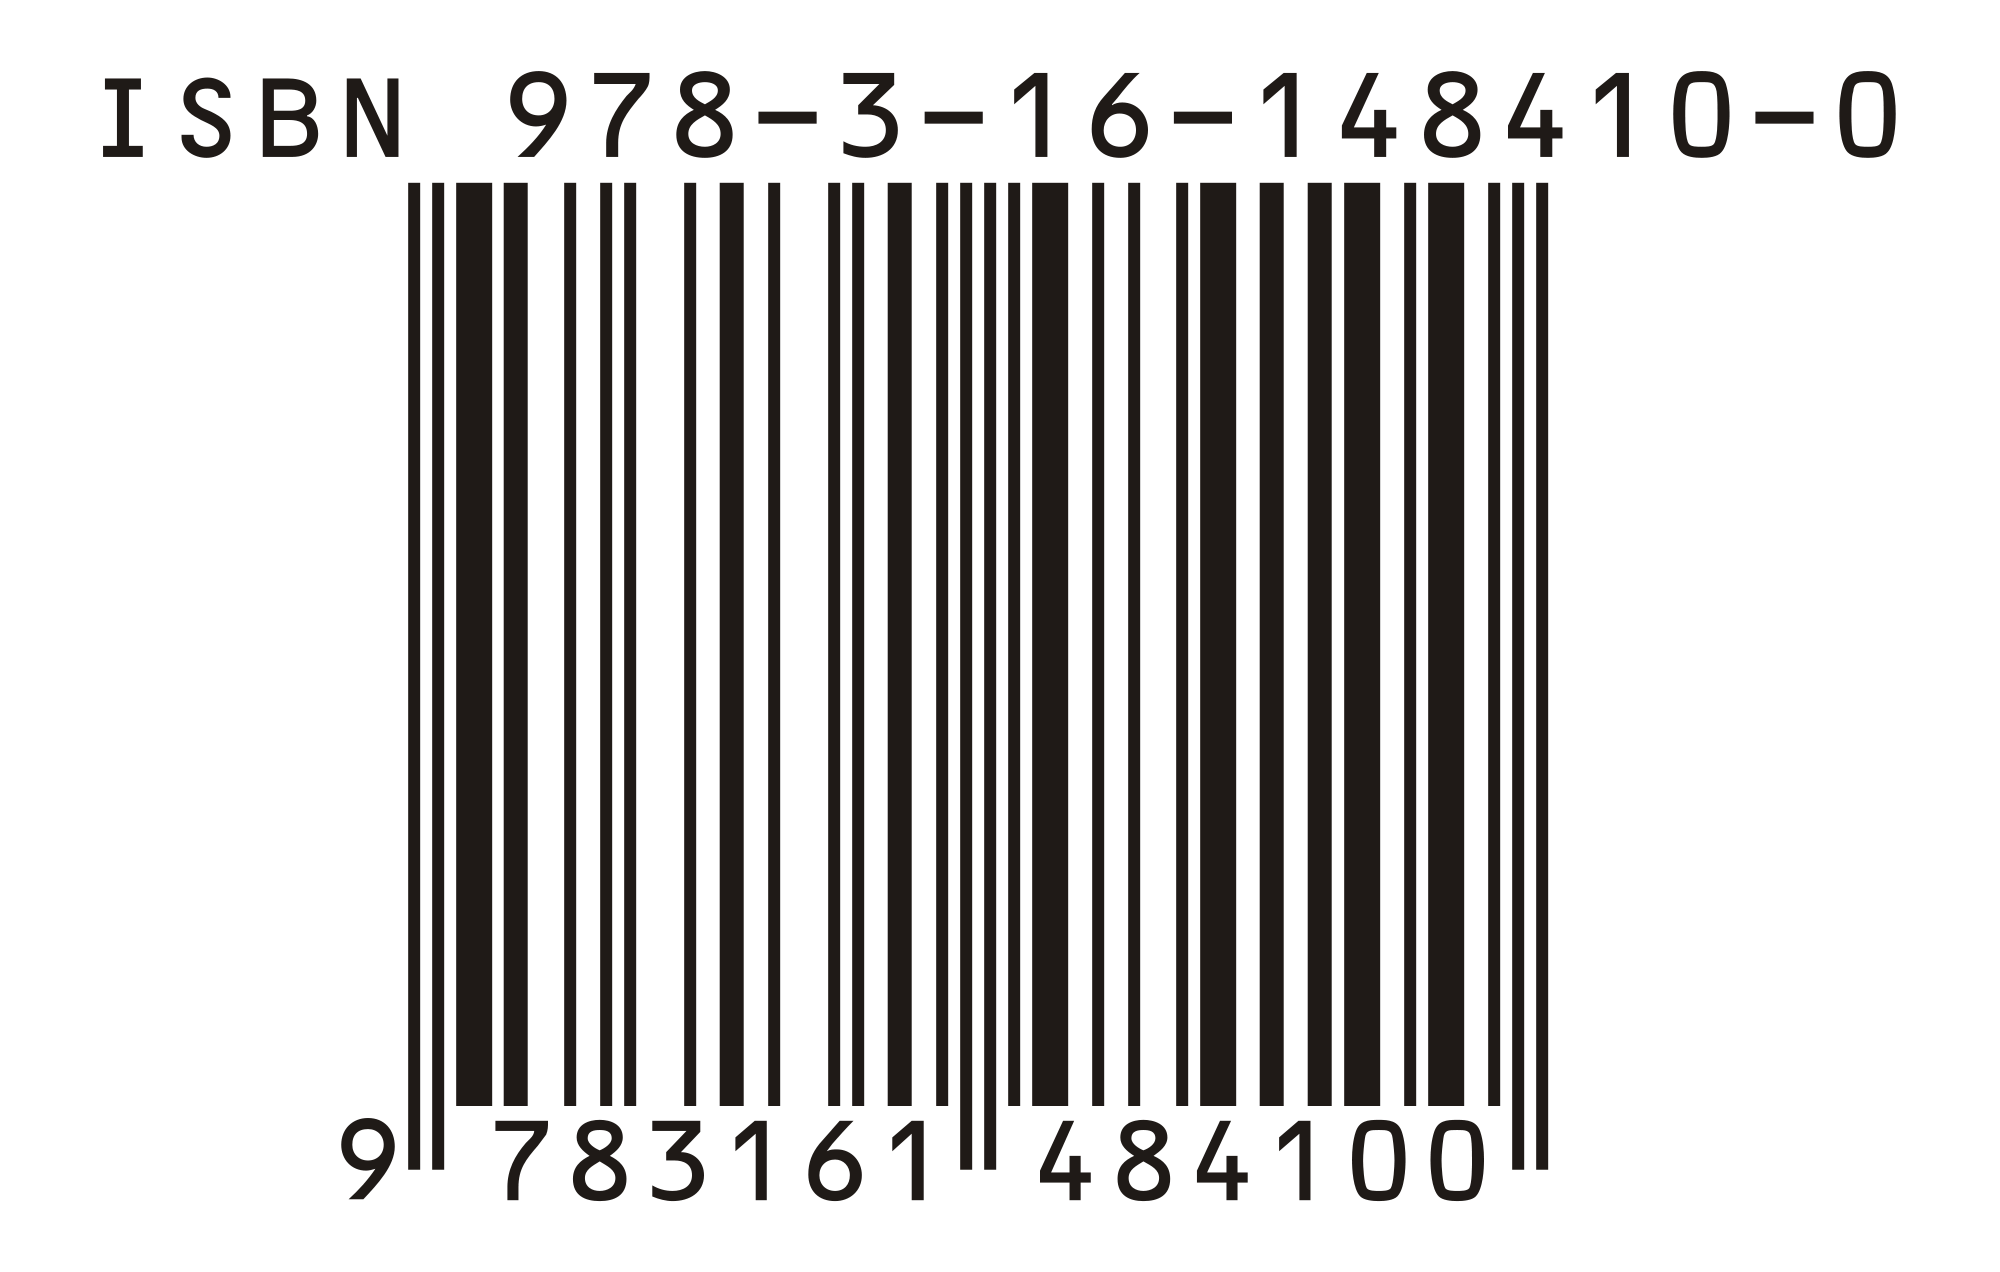 Book bar code png. Readbookmatch find friends with